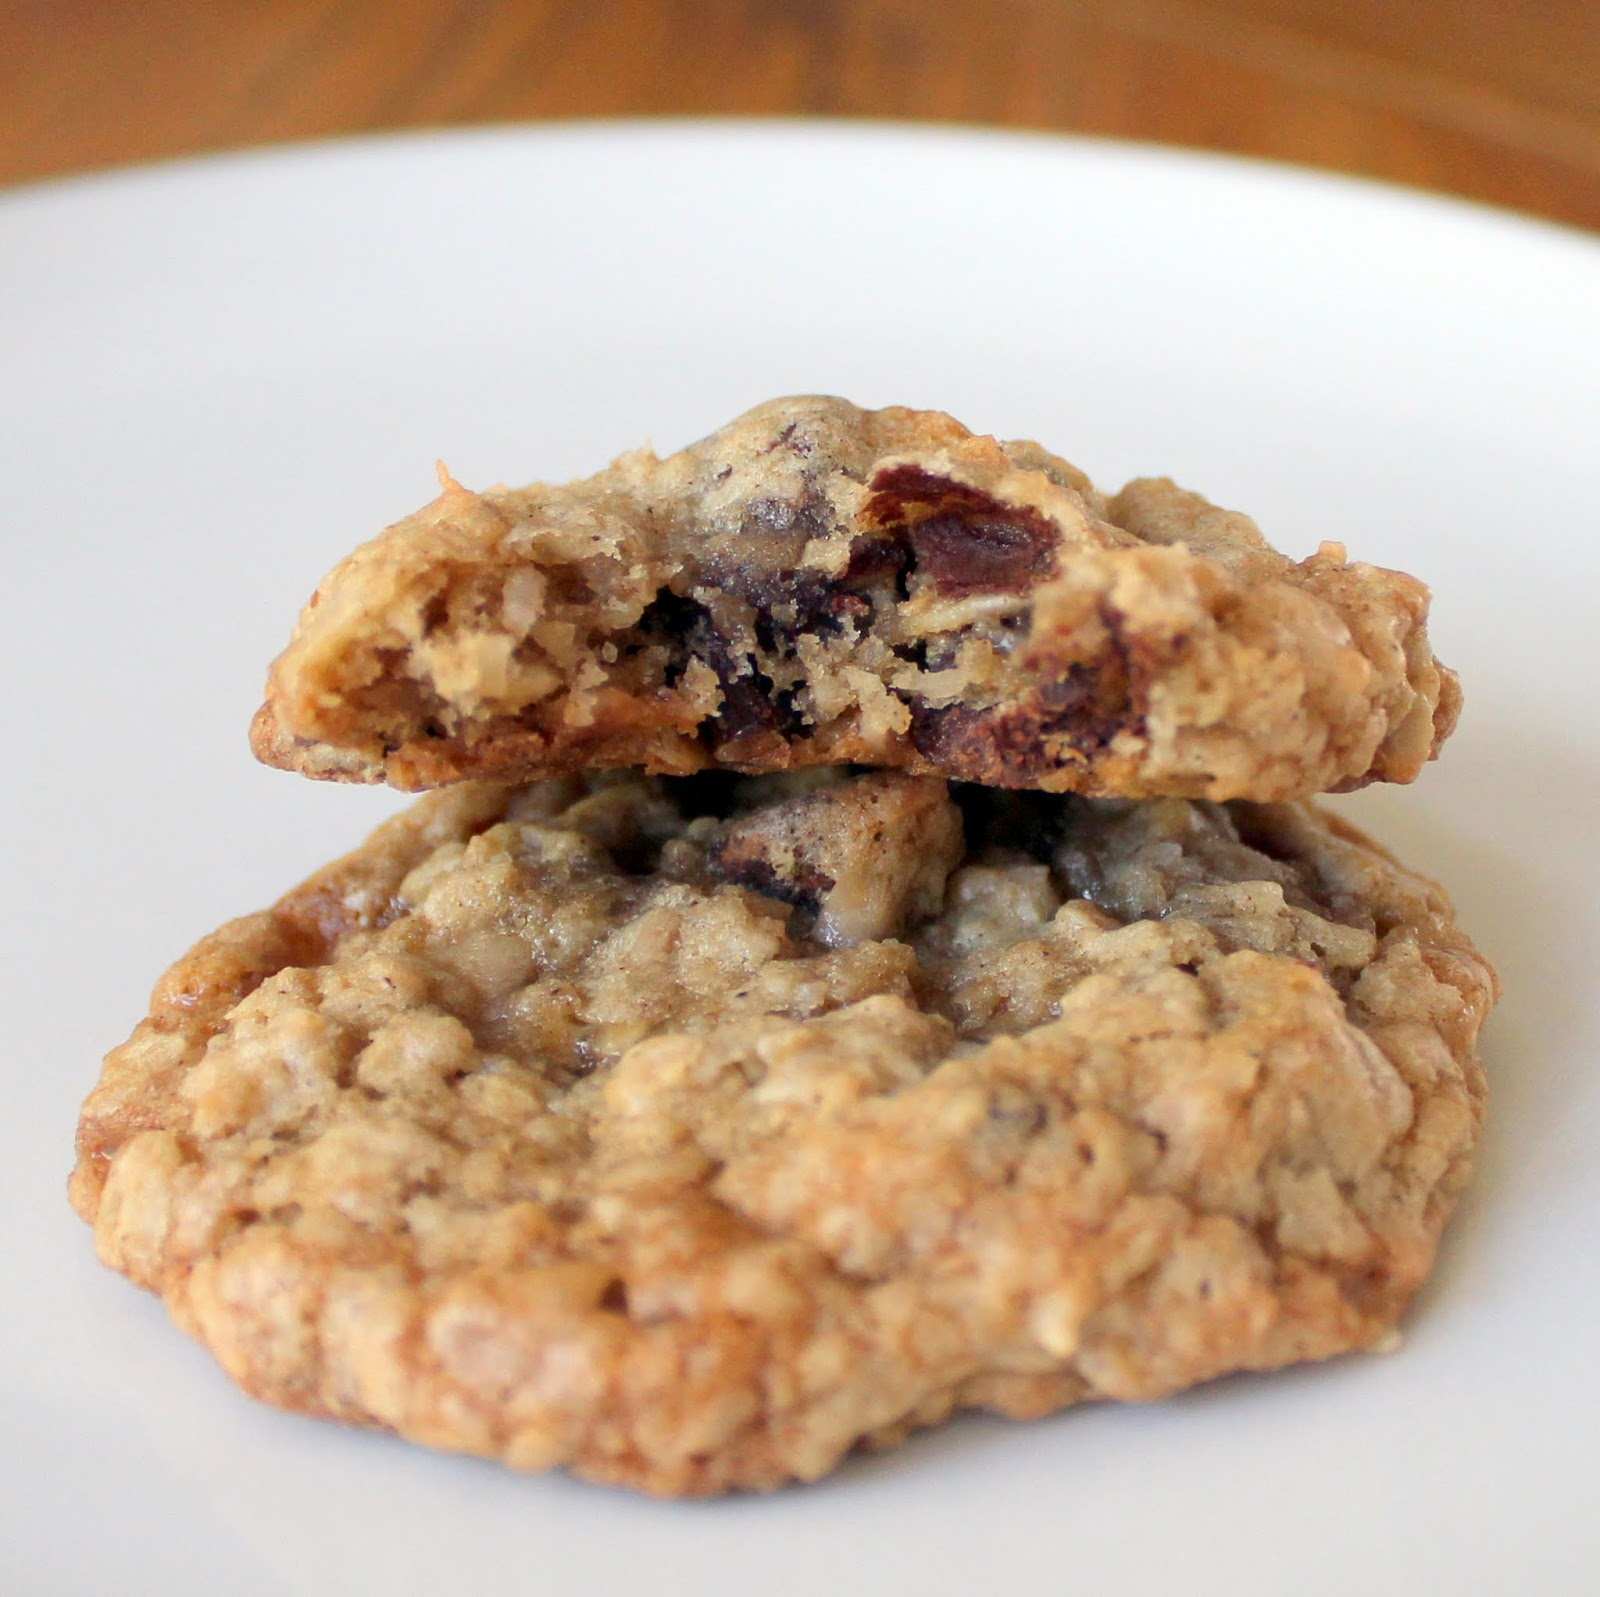 Chomping Board: Oatmeal Chocolate Chip Coconut Toffee Cookies